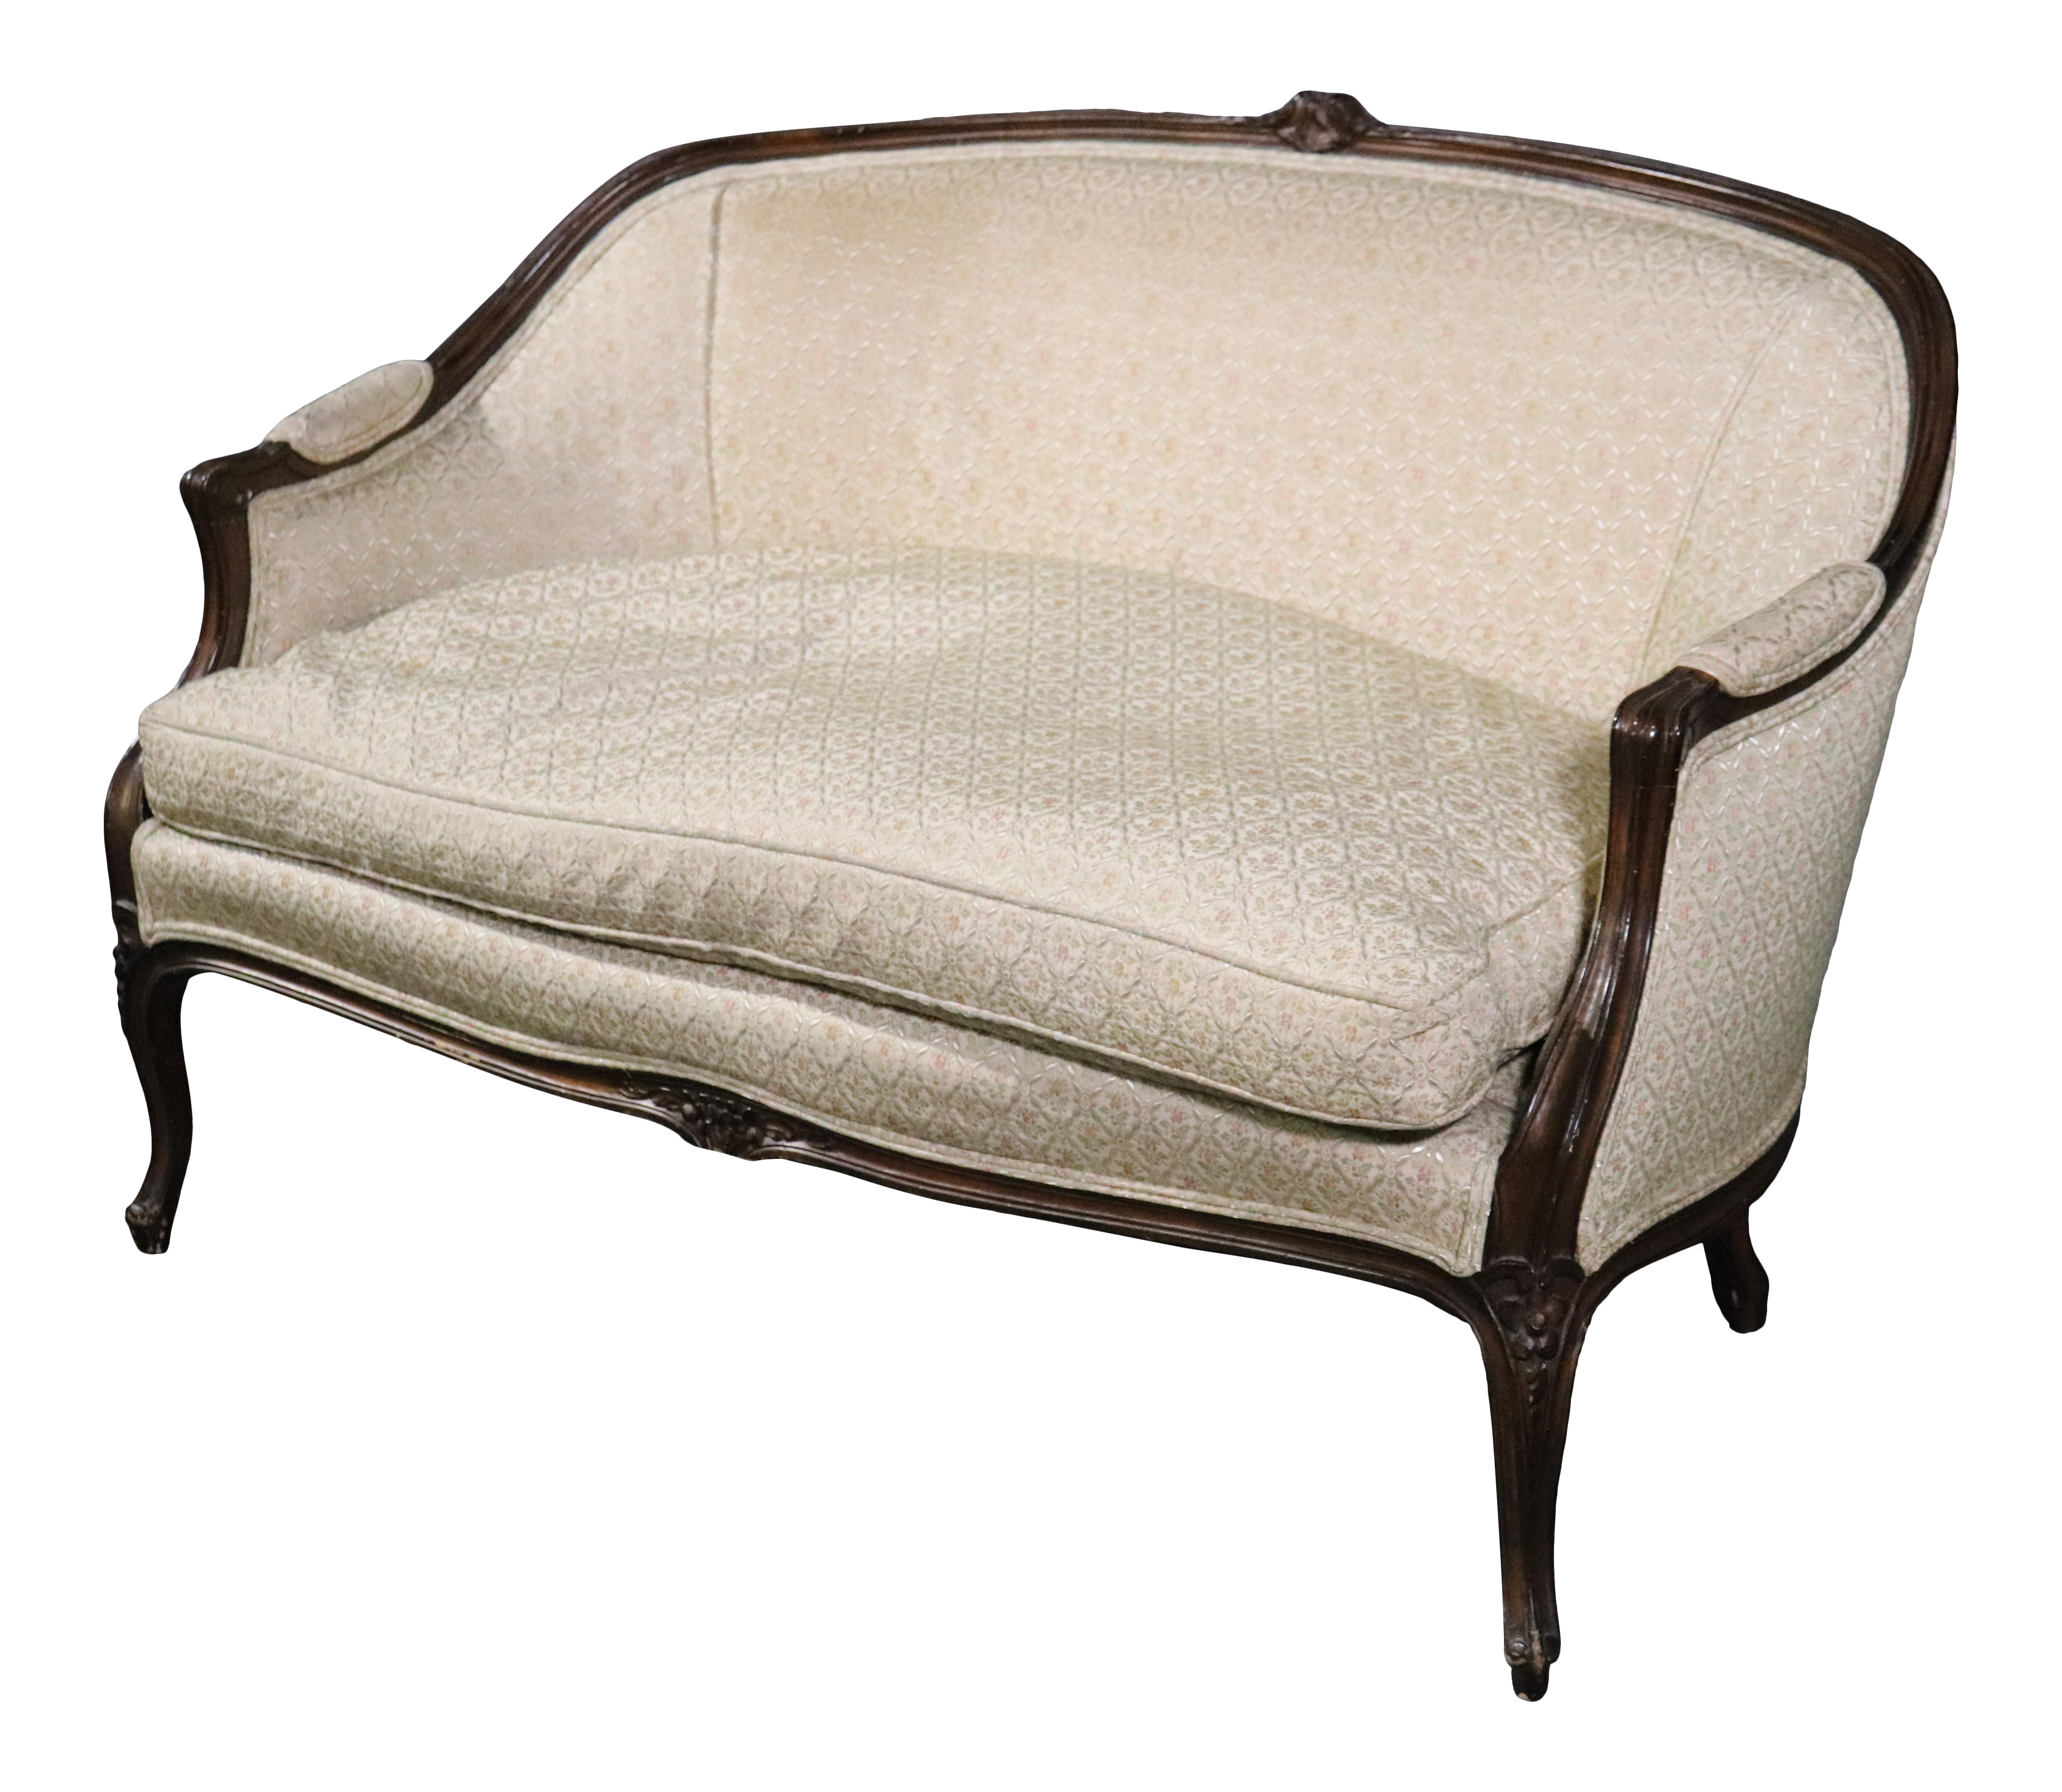 Vintage Used Loveseats And Settees For Sale Chairish